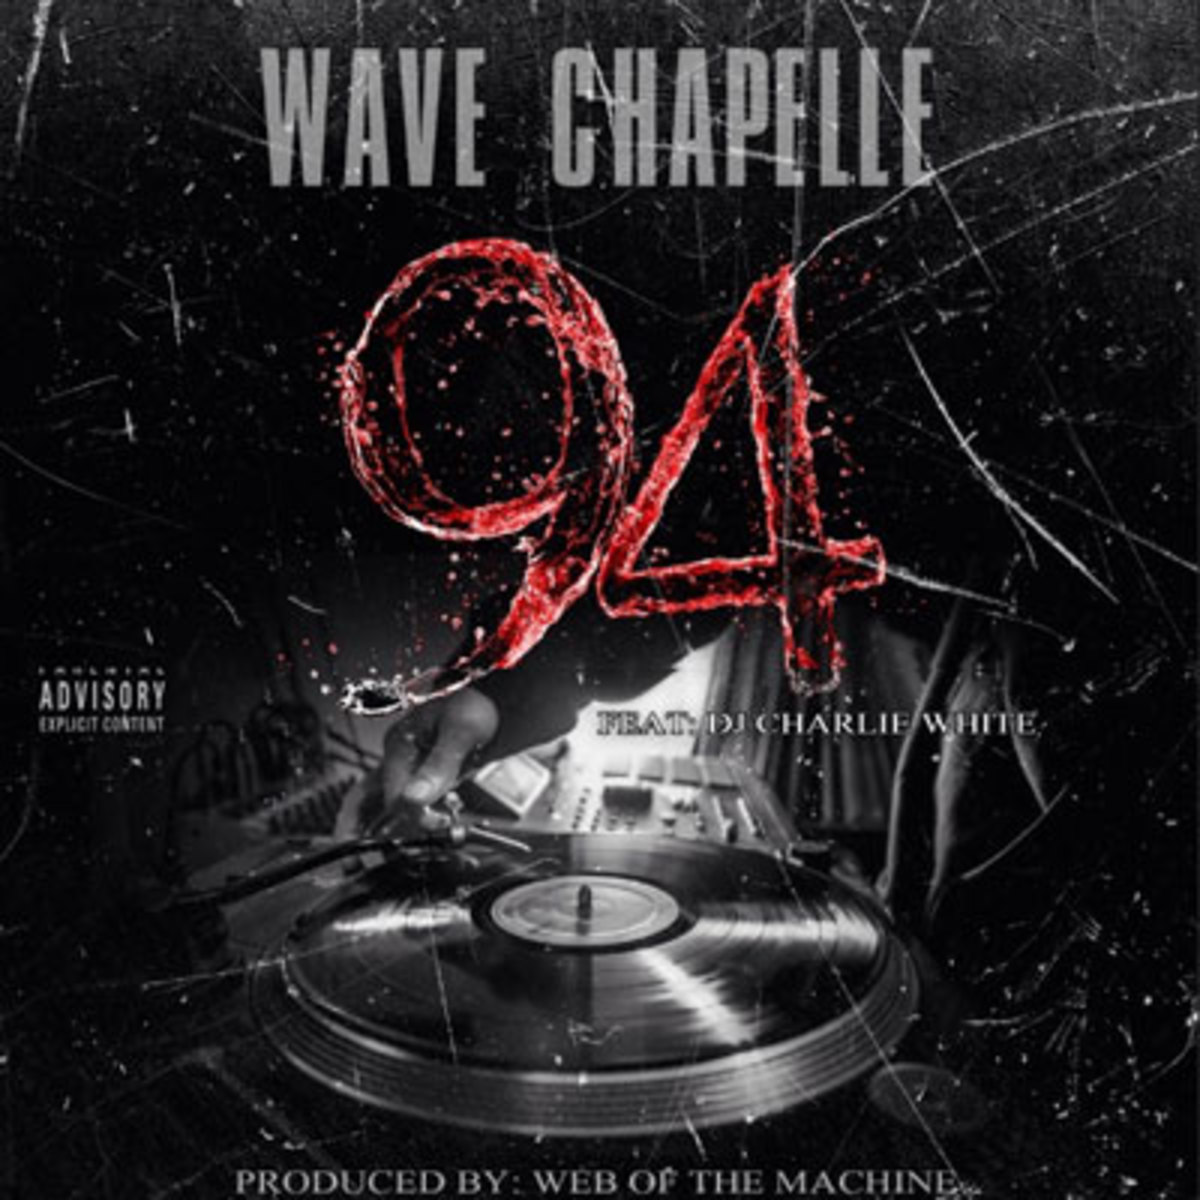 wavechapelle-94.jpg